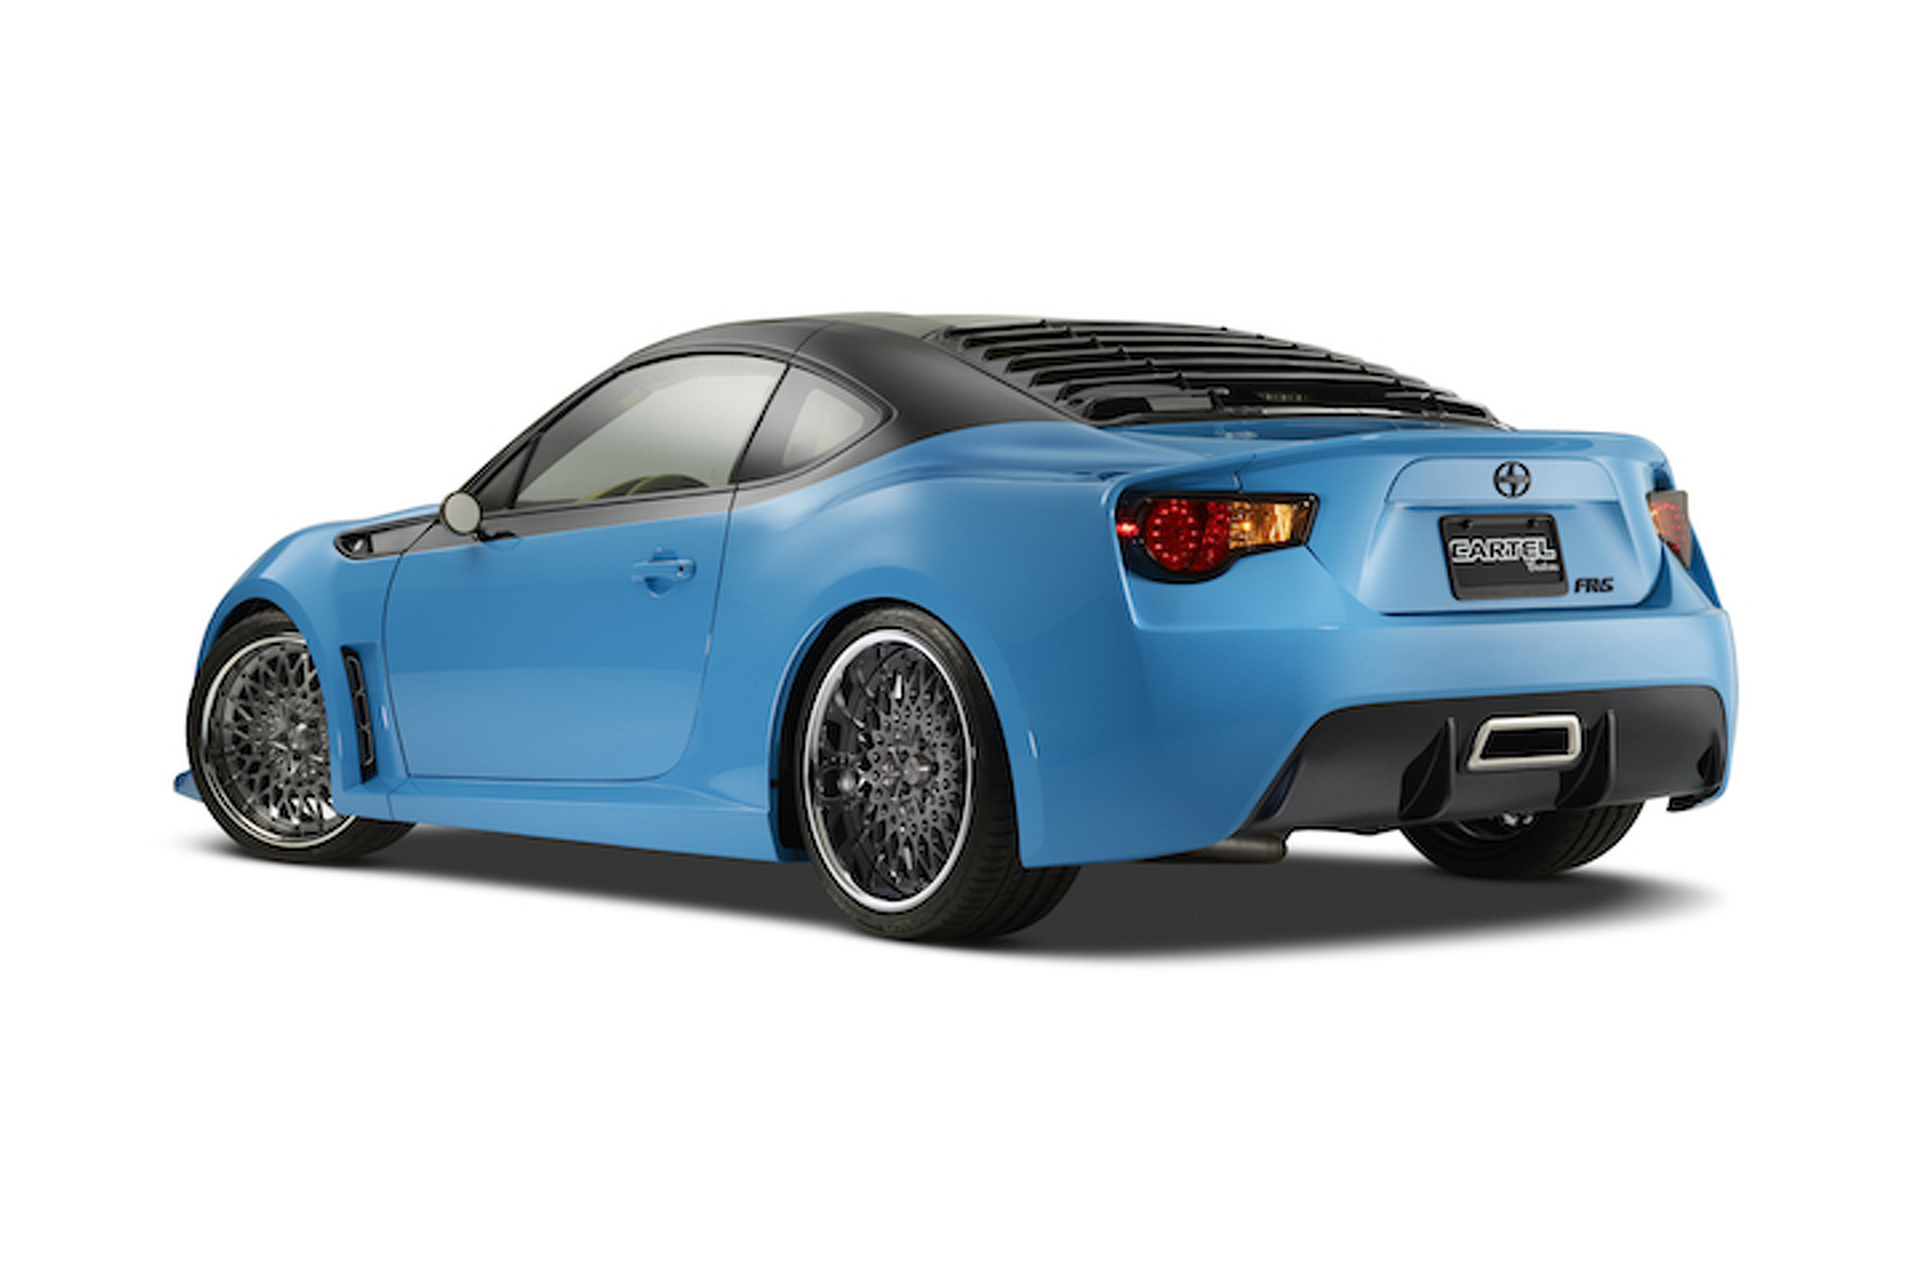 Scion Made an FR-S Targa Turbo That's Almost Perfect